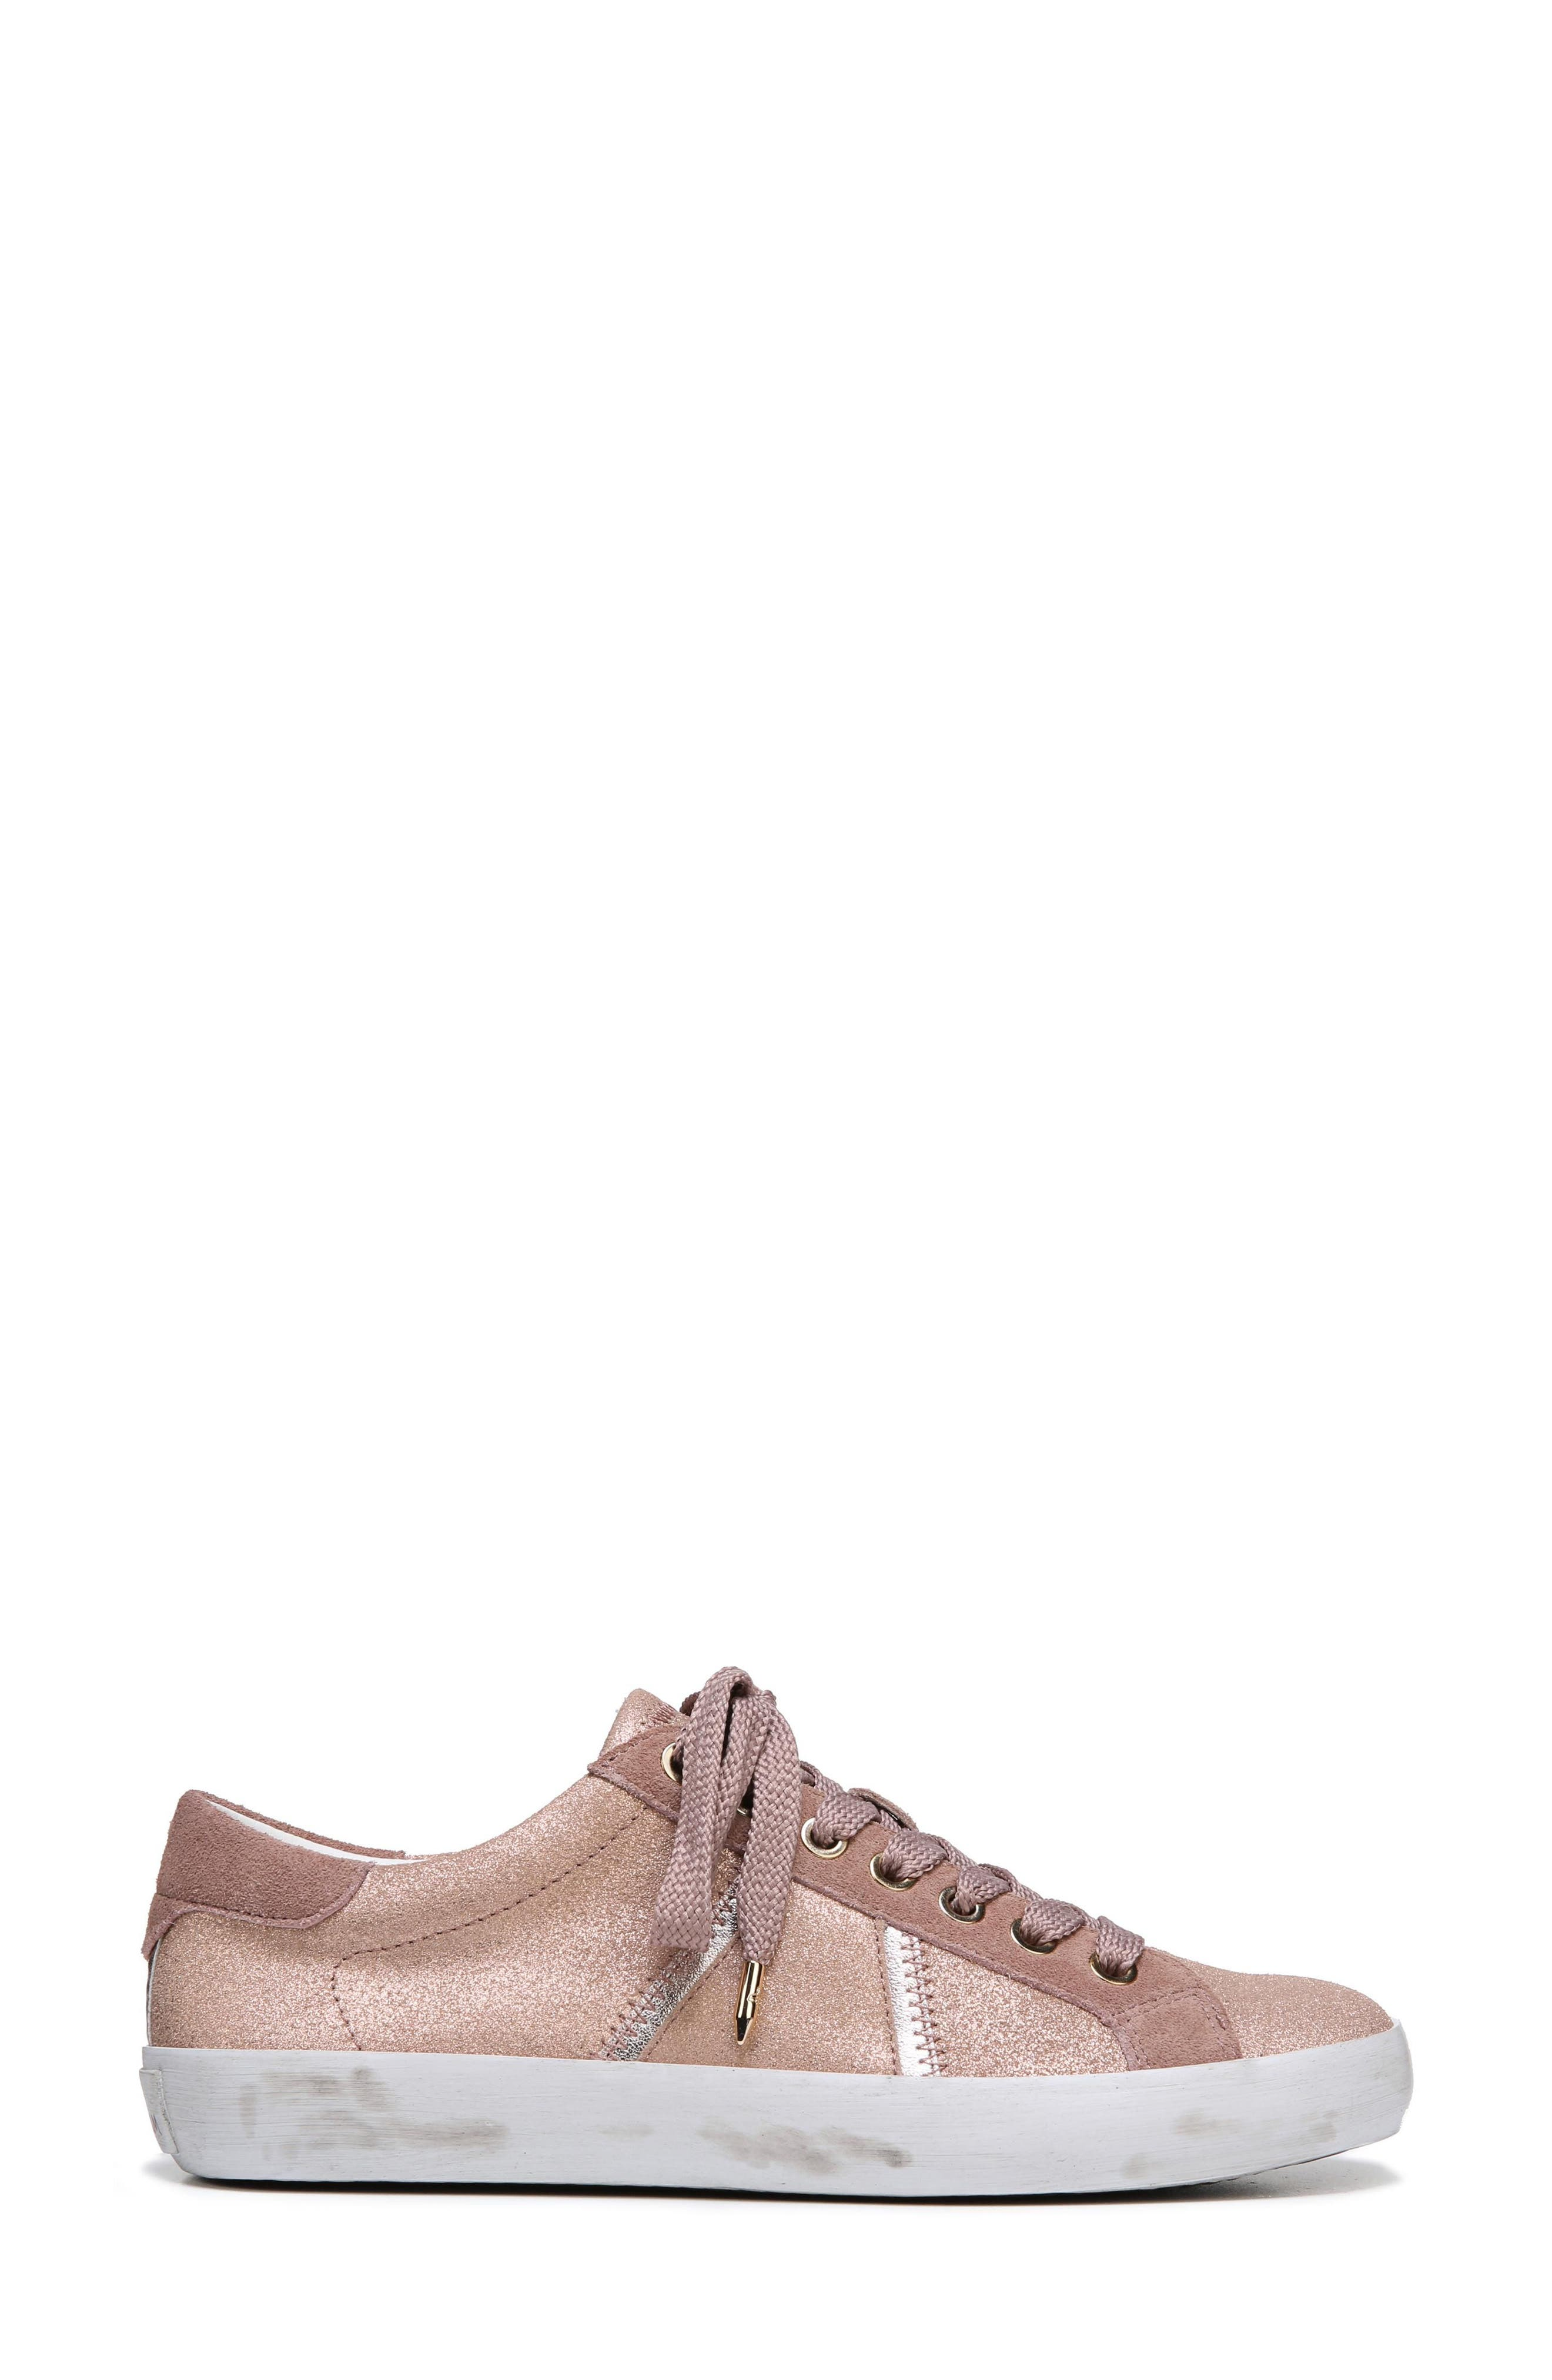 Baylee Sneaker,                             Alternate thumbnail 3, color,                             Blush Suede